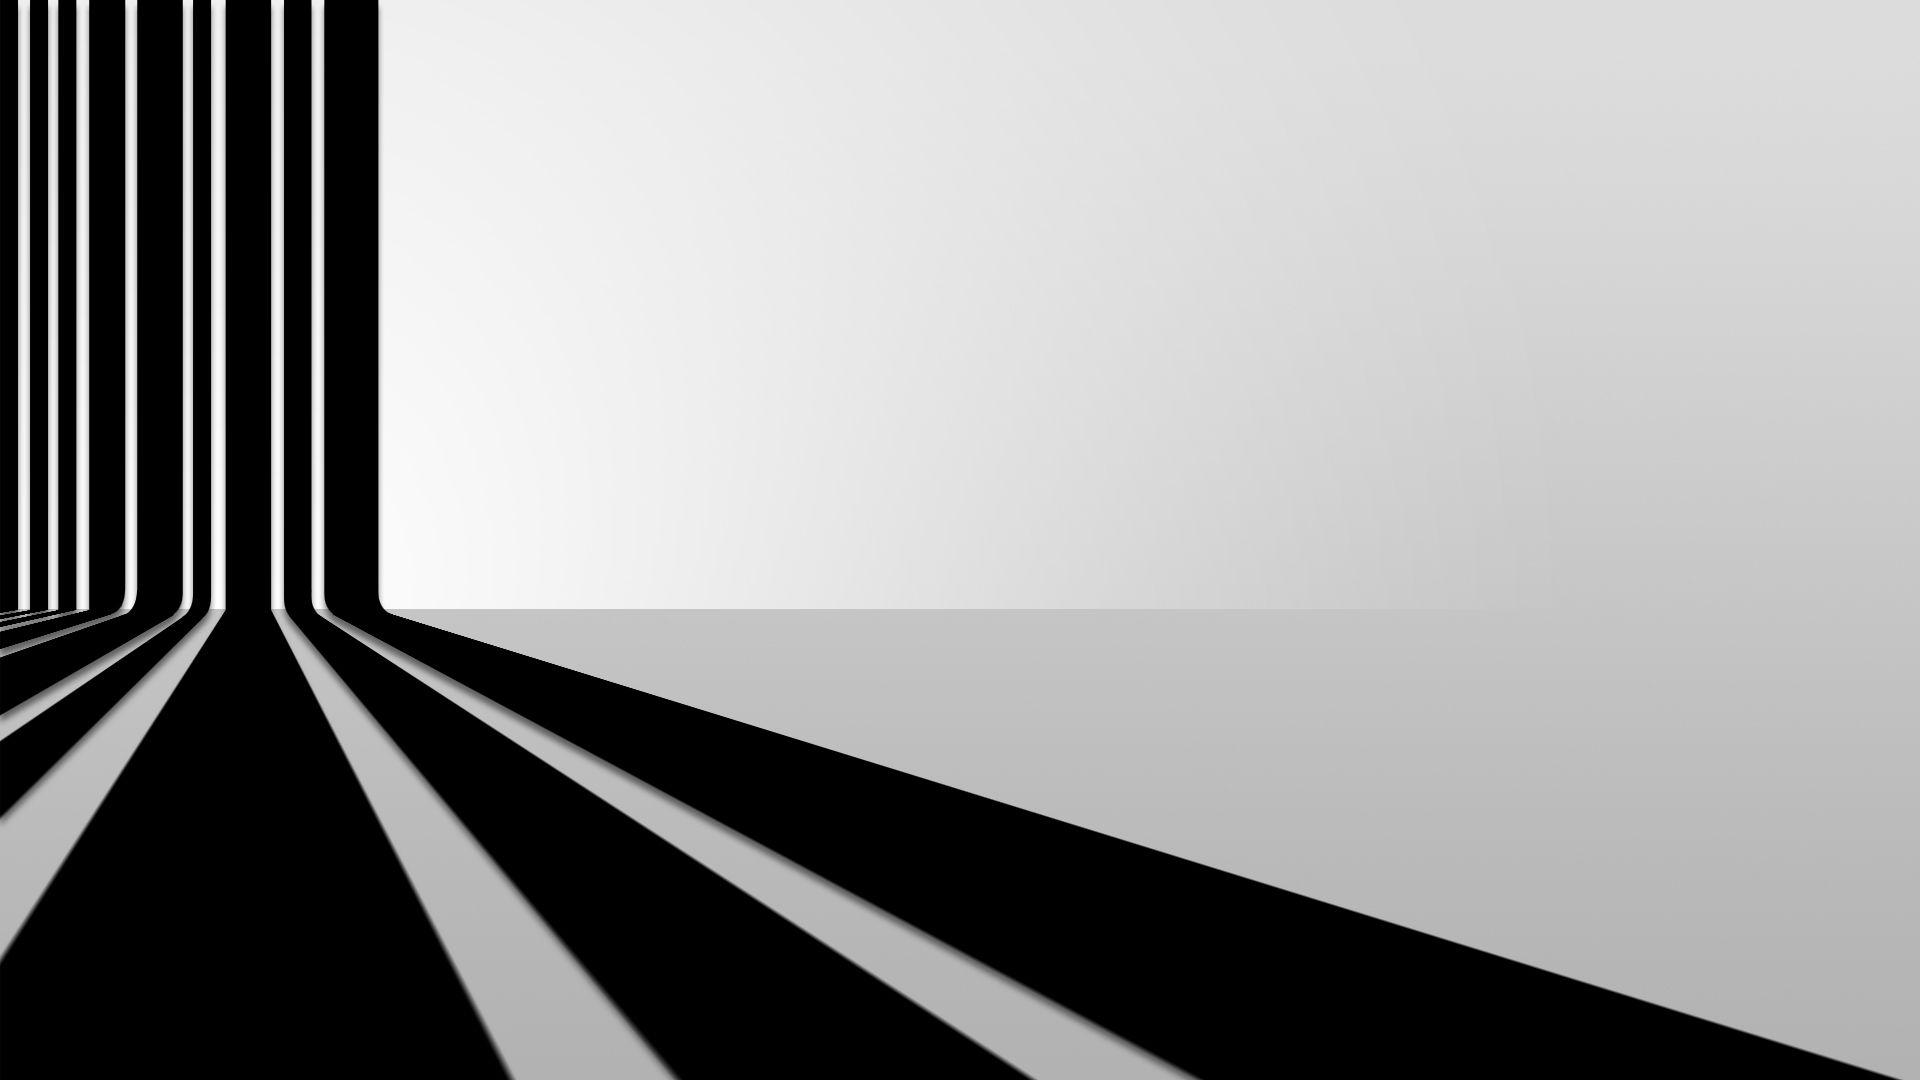 Balck And White Wallpaper: Free Wallpapers Black And White